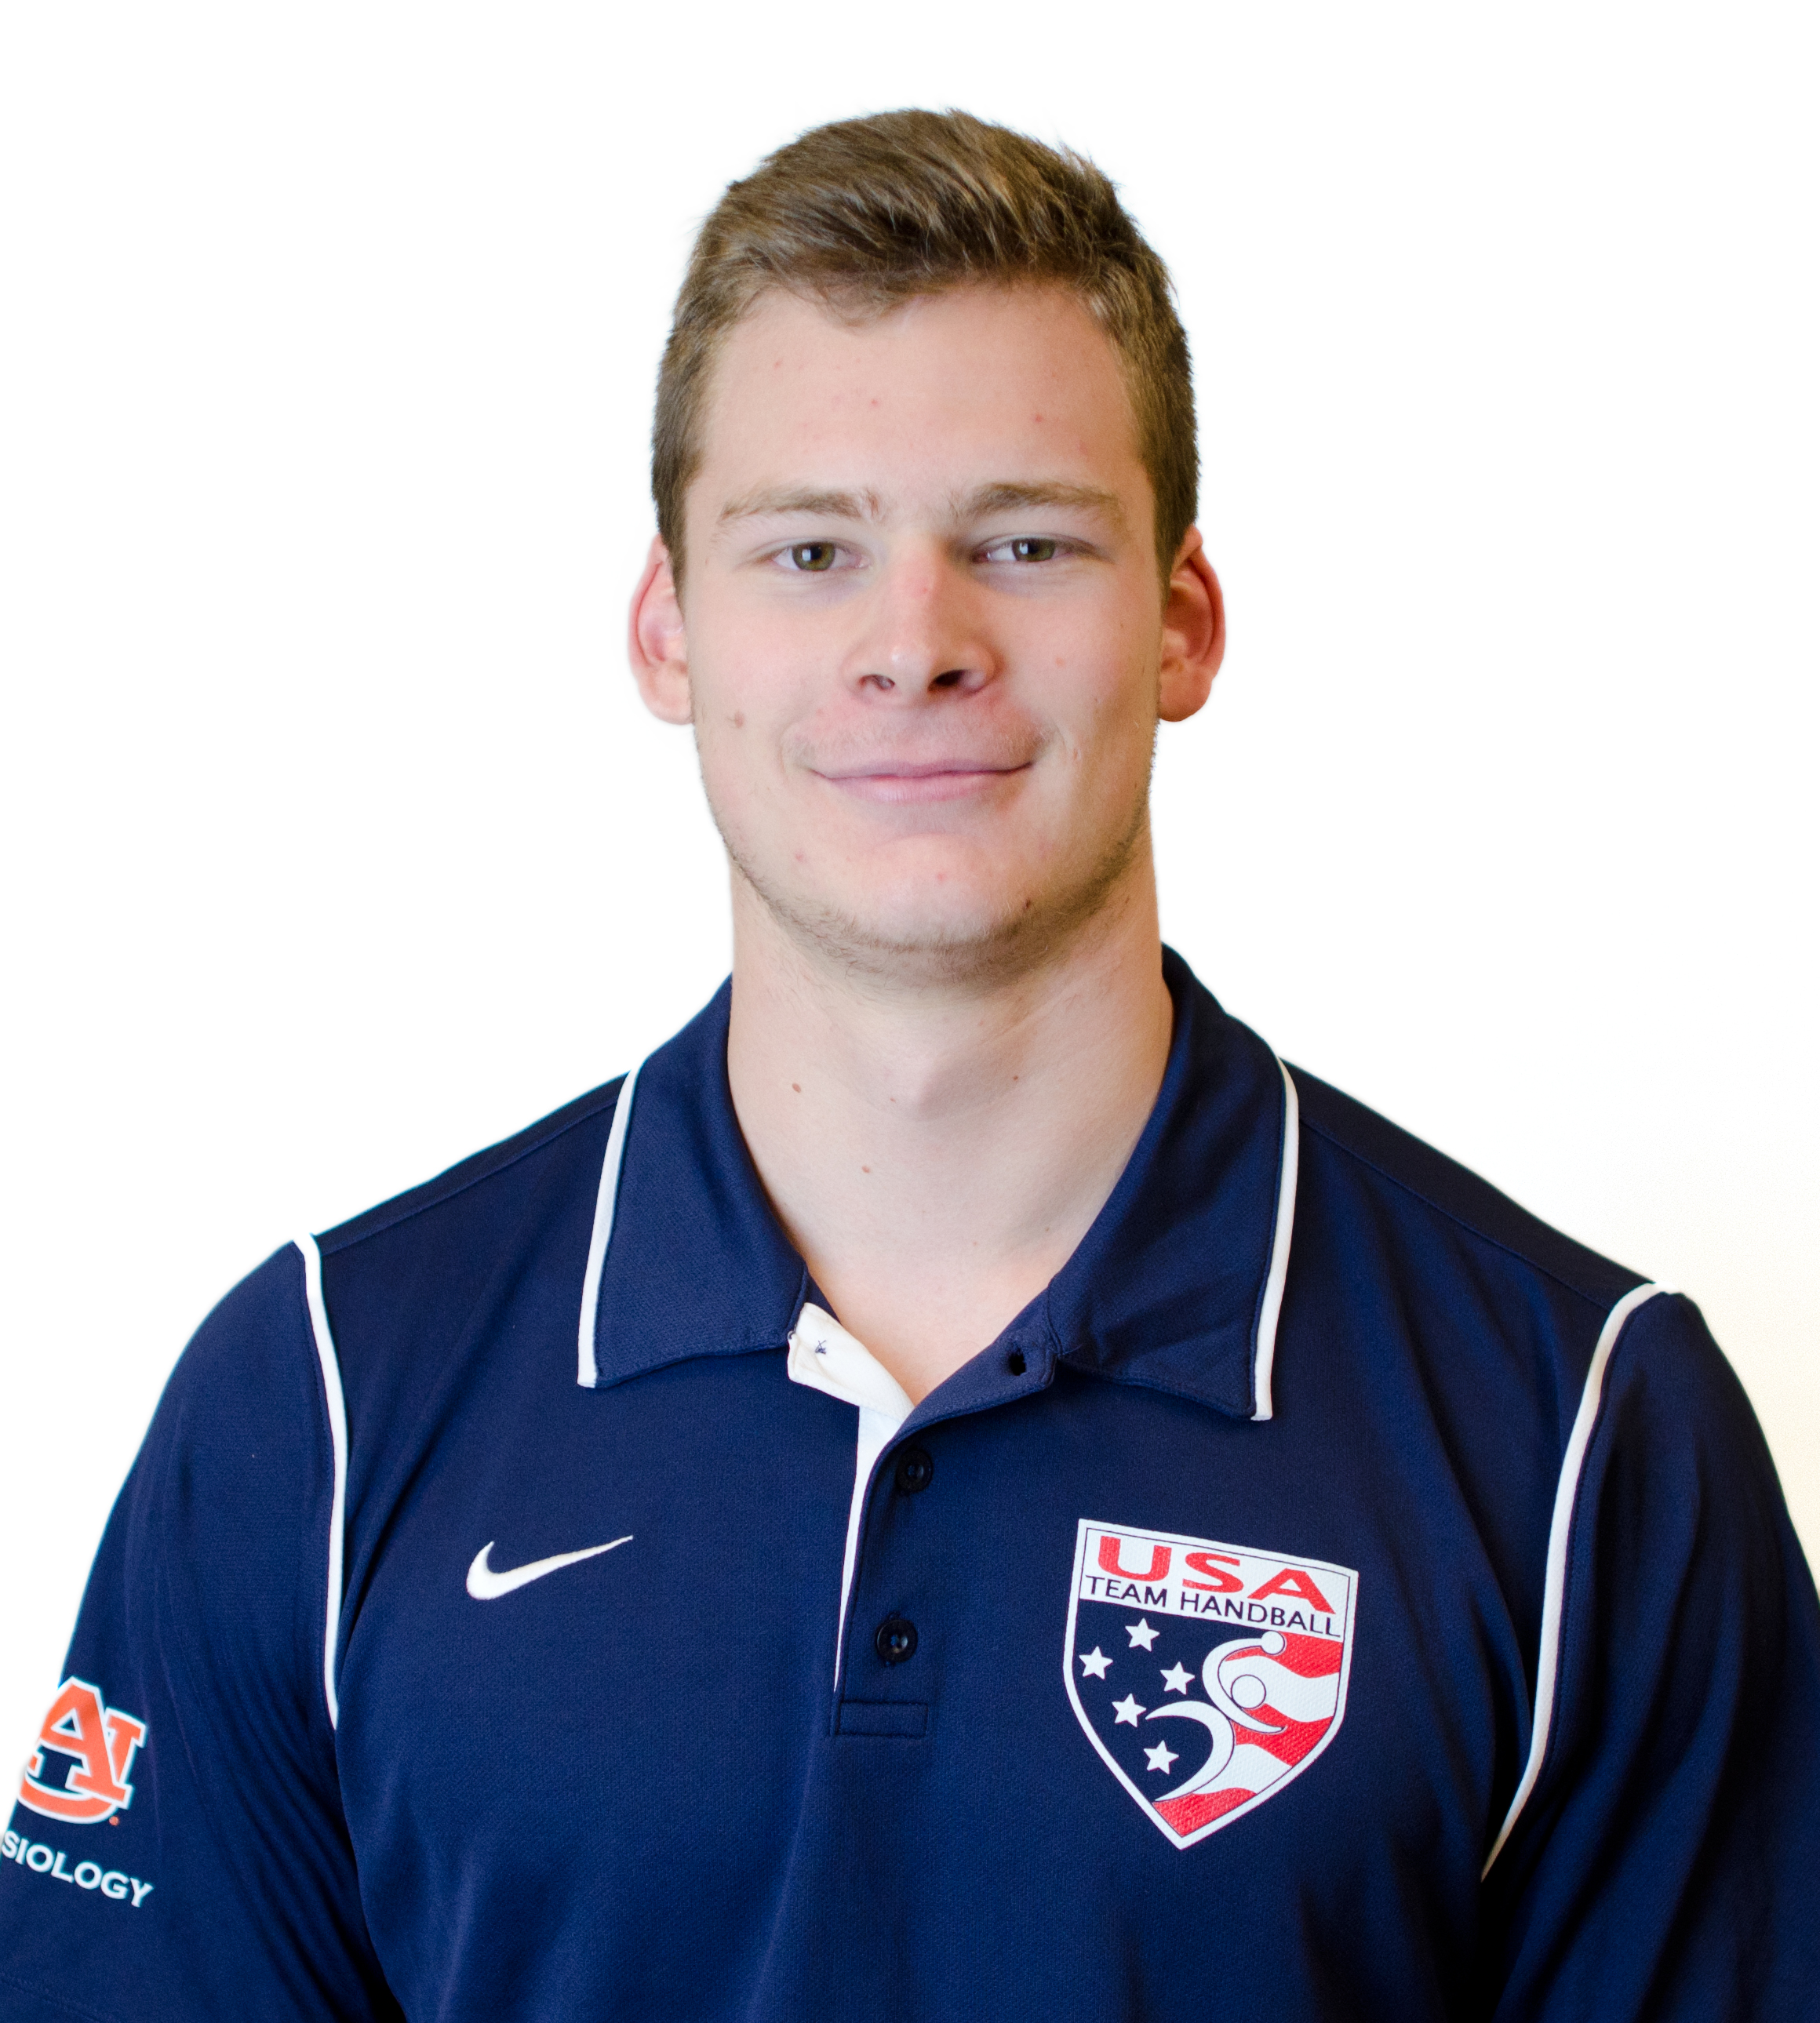 USA National Team Player Headshot